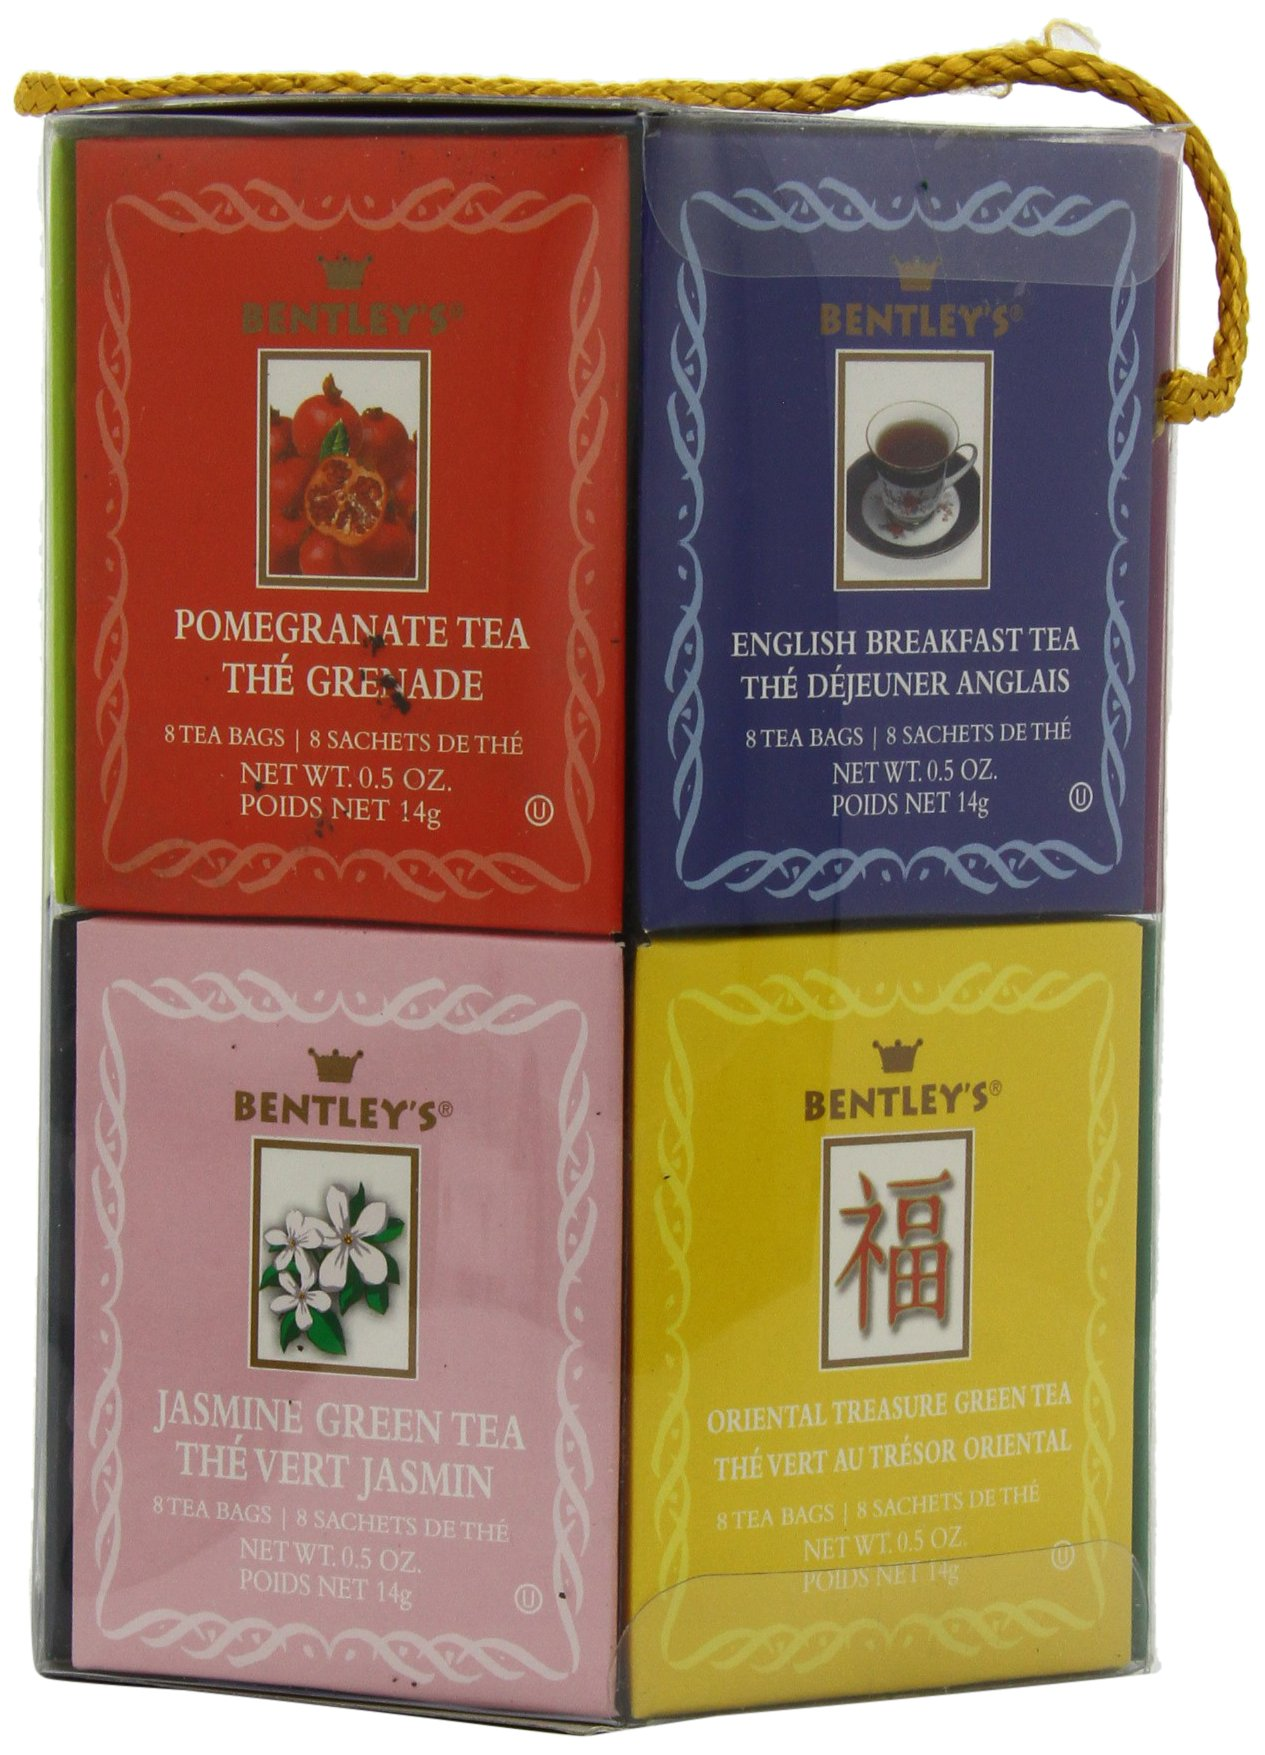 Bentley's Royal Classic Collection Assorted Flavor Gift Pack, 96 Tea Bags (Pack of 2), Includes 8 Bags Each of a Variety of Black and Green Tea Flavors by Bentley's (Image #4)